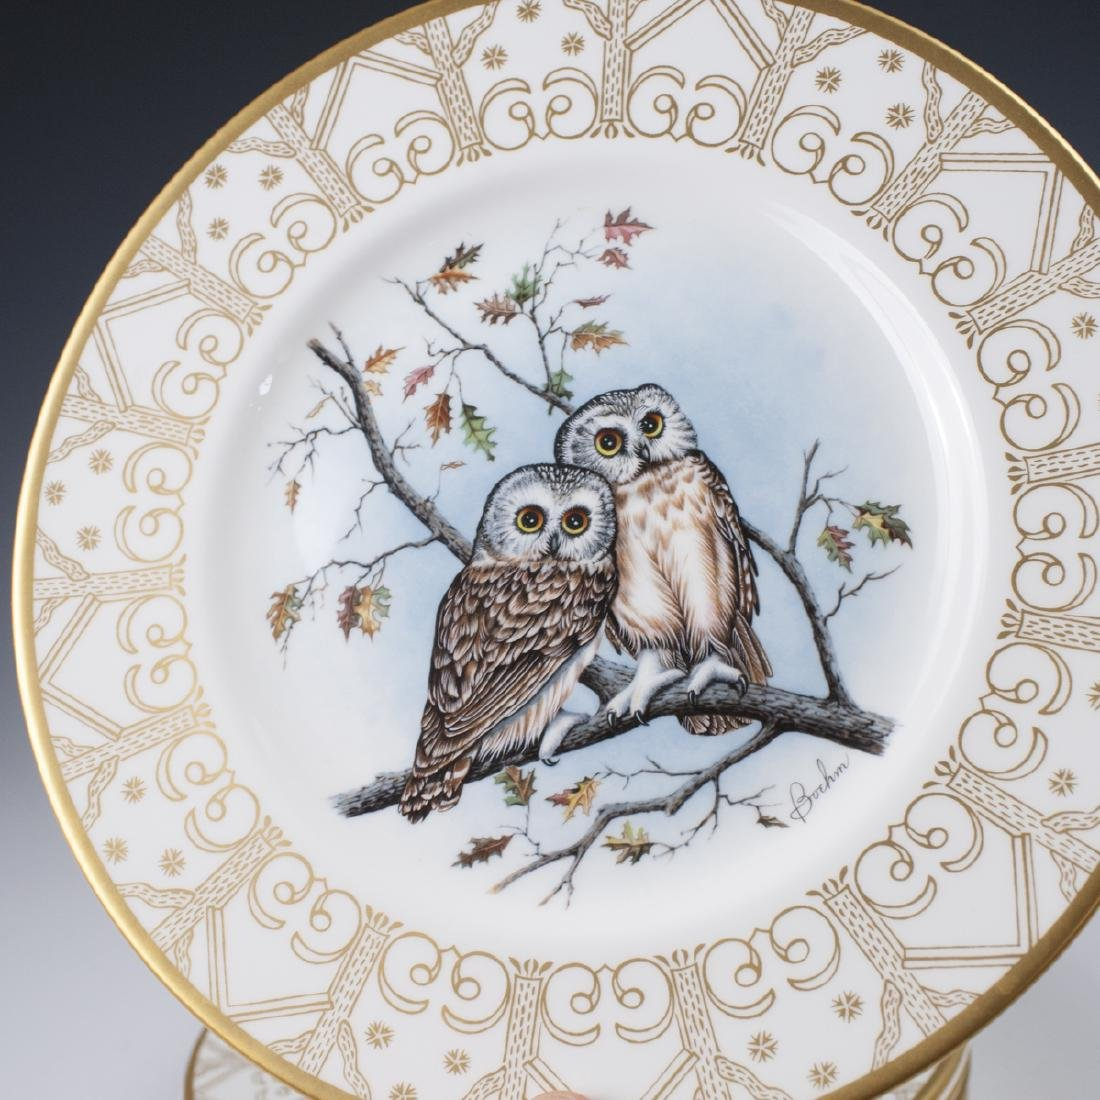 Edward Marshall Boehm Owl Plate Collection - 4